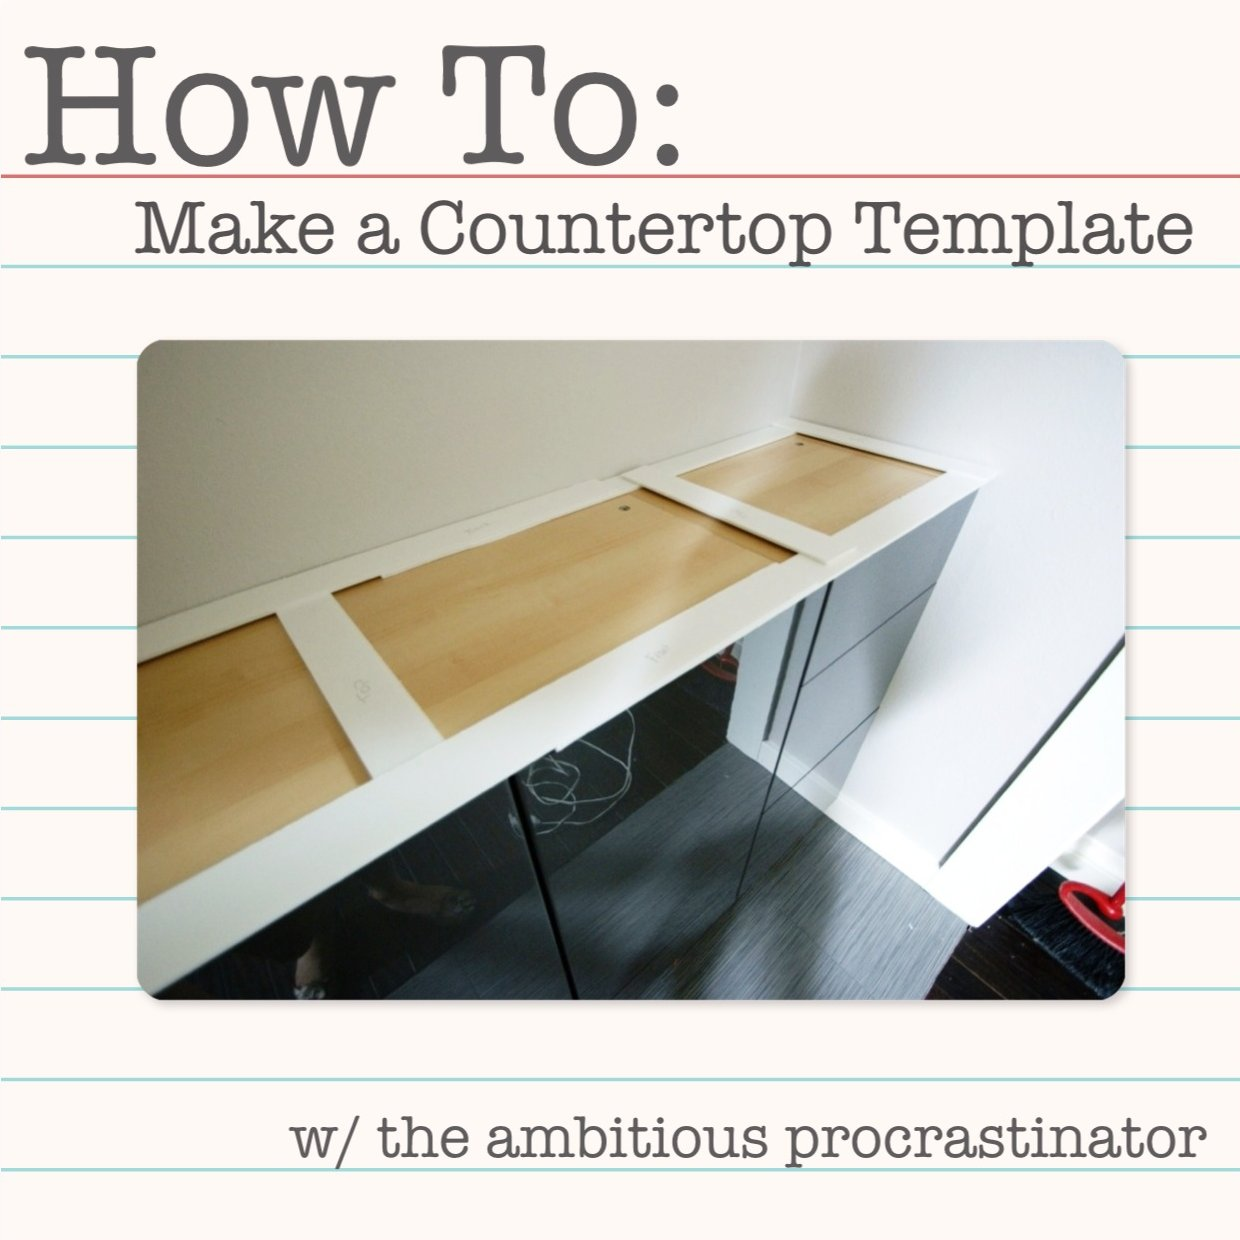 the ambitious procrastinator: How To Make a Countertop Template